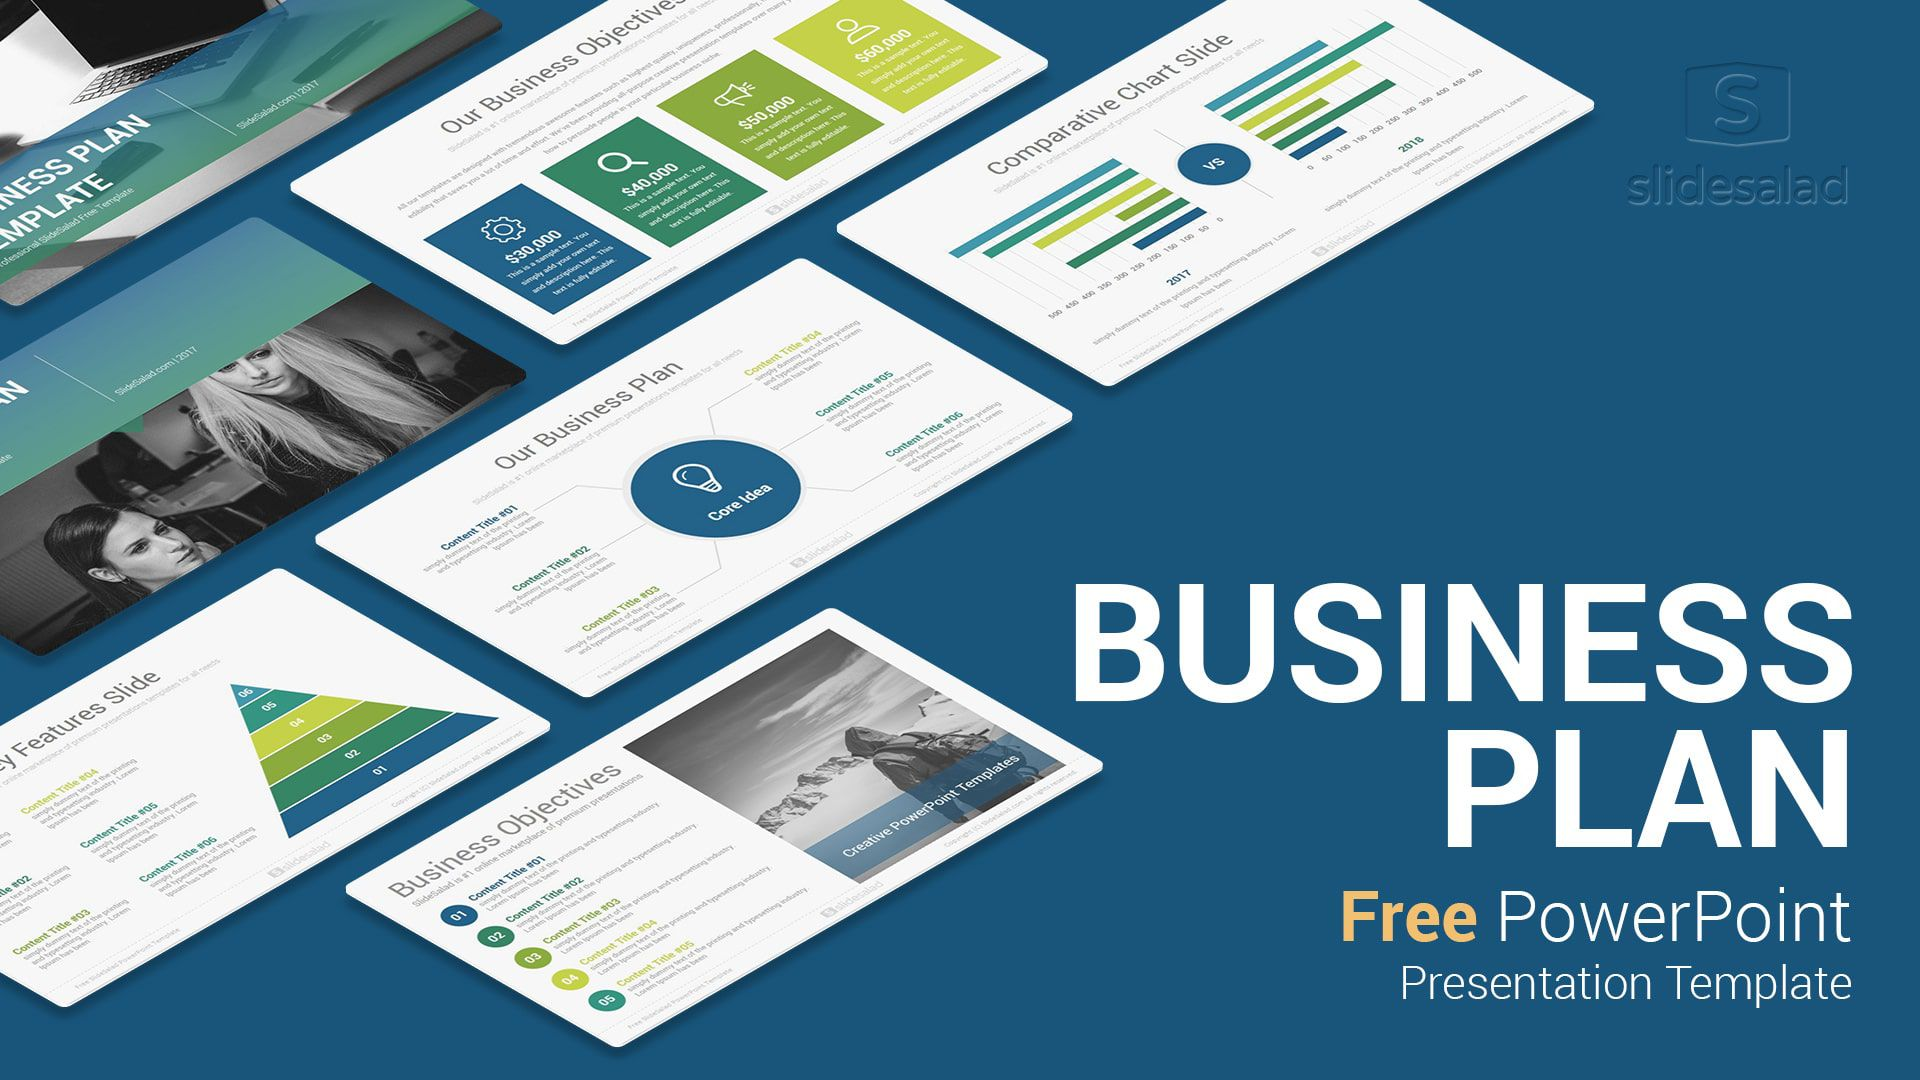 007 Unusual Free Busines Proposal Template Ppt High Definition  Best Plan 2020Full